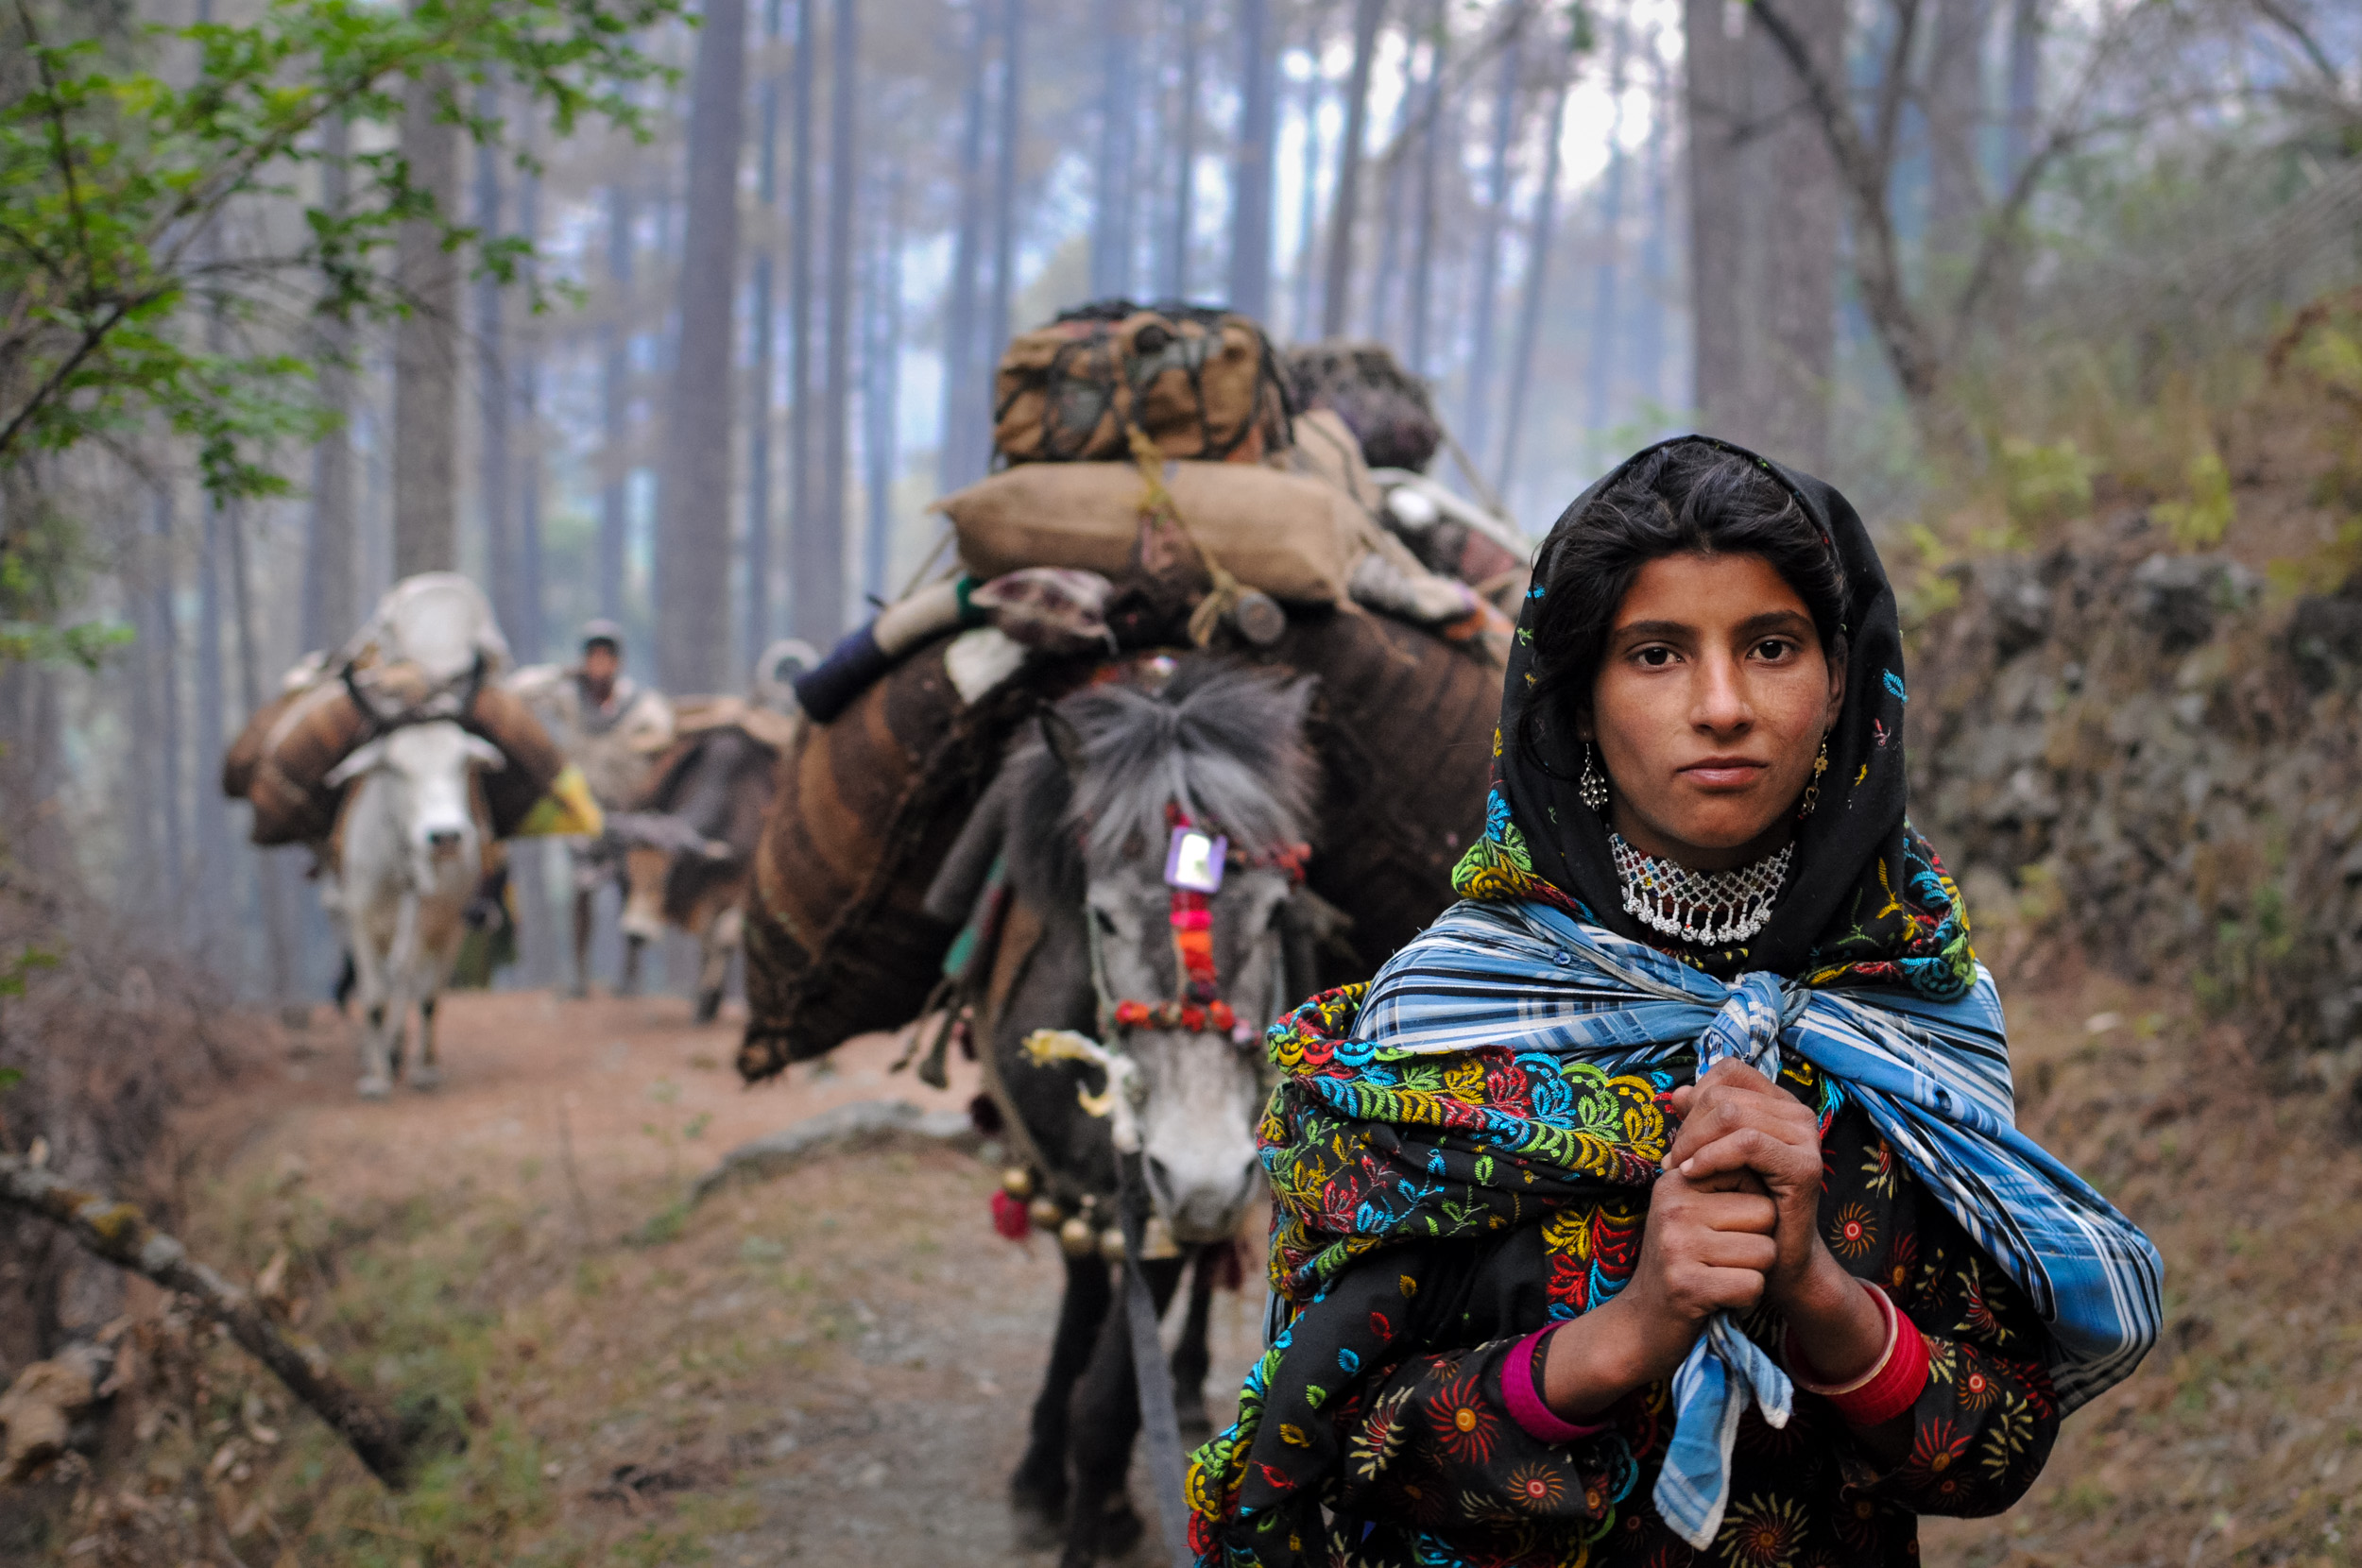 17-year-old Mariam leads the caravan through forested Himalayan foothills. She's carrying her 2-year-old niece in the shawl that's wrapped over her shoulders.